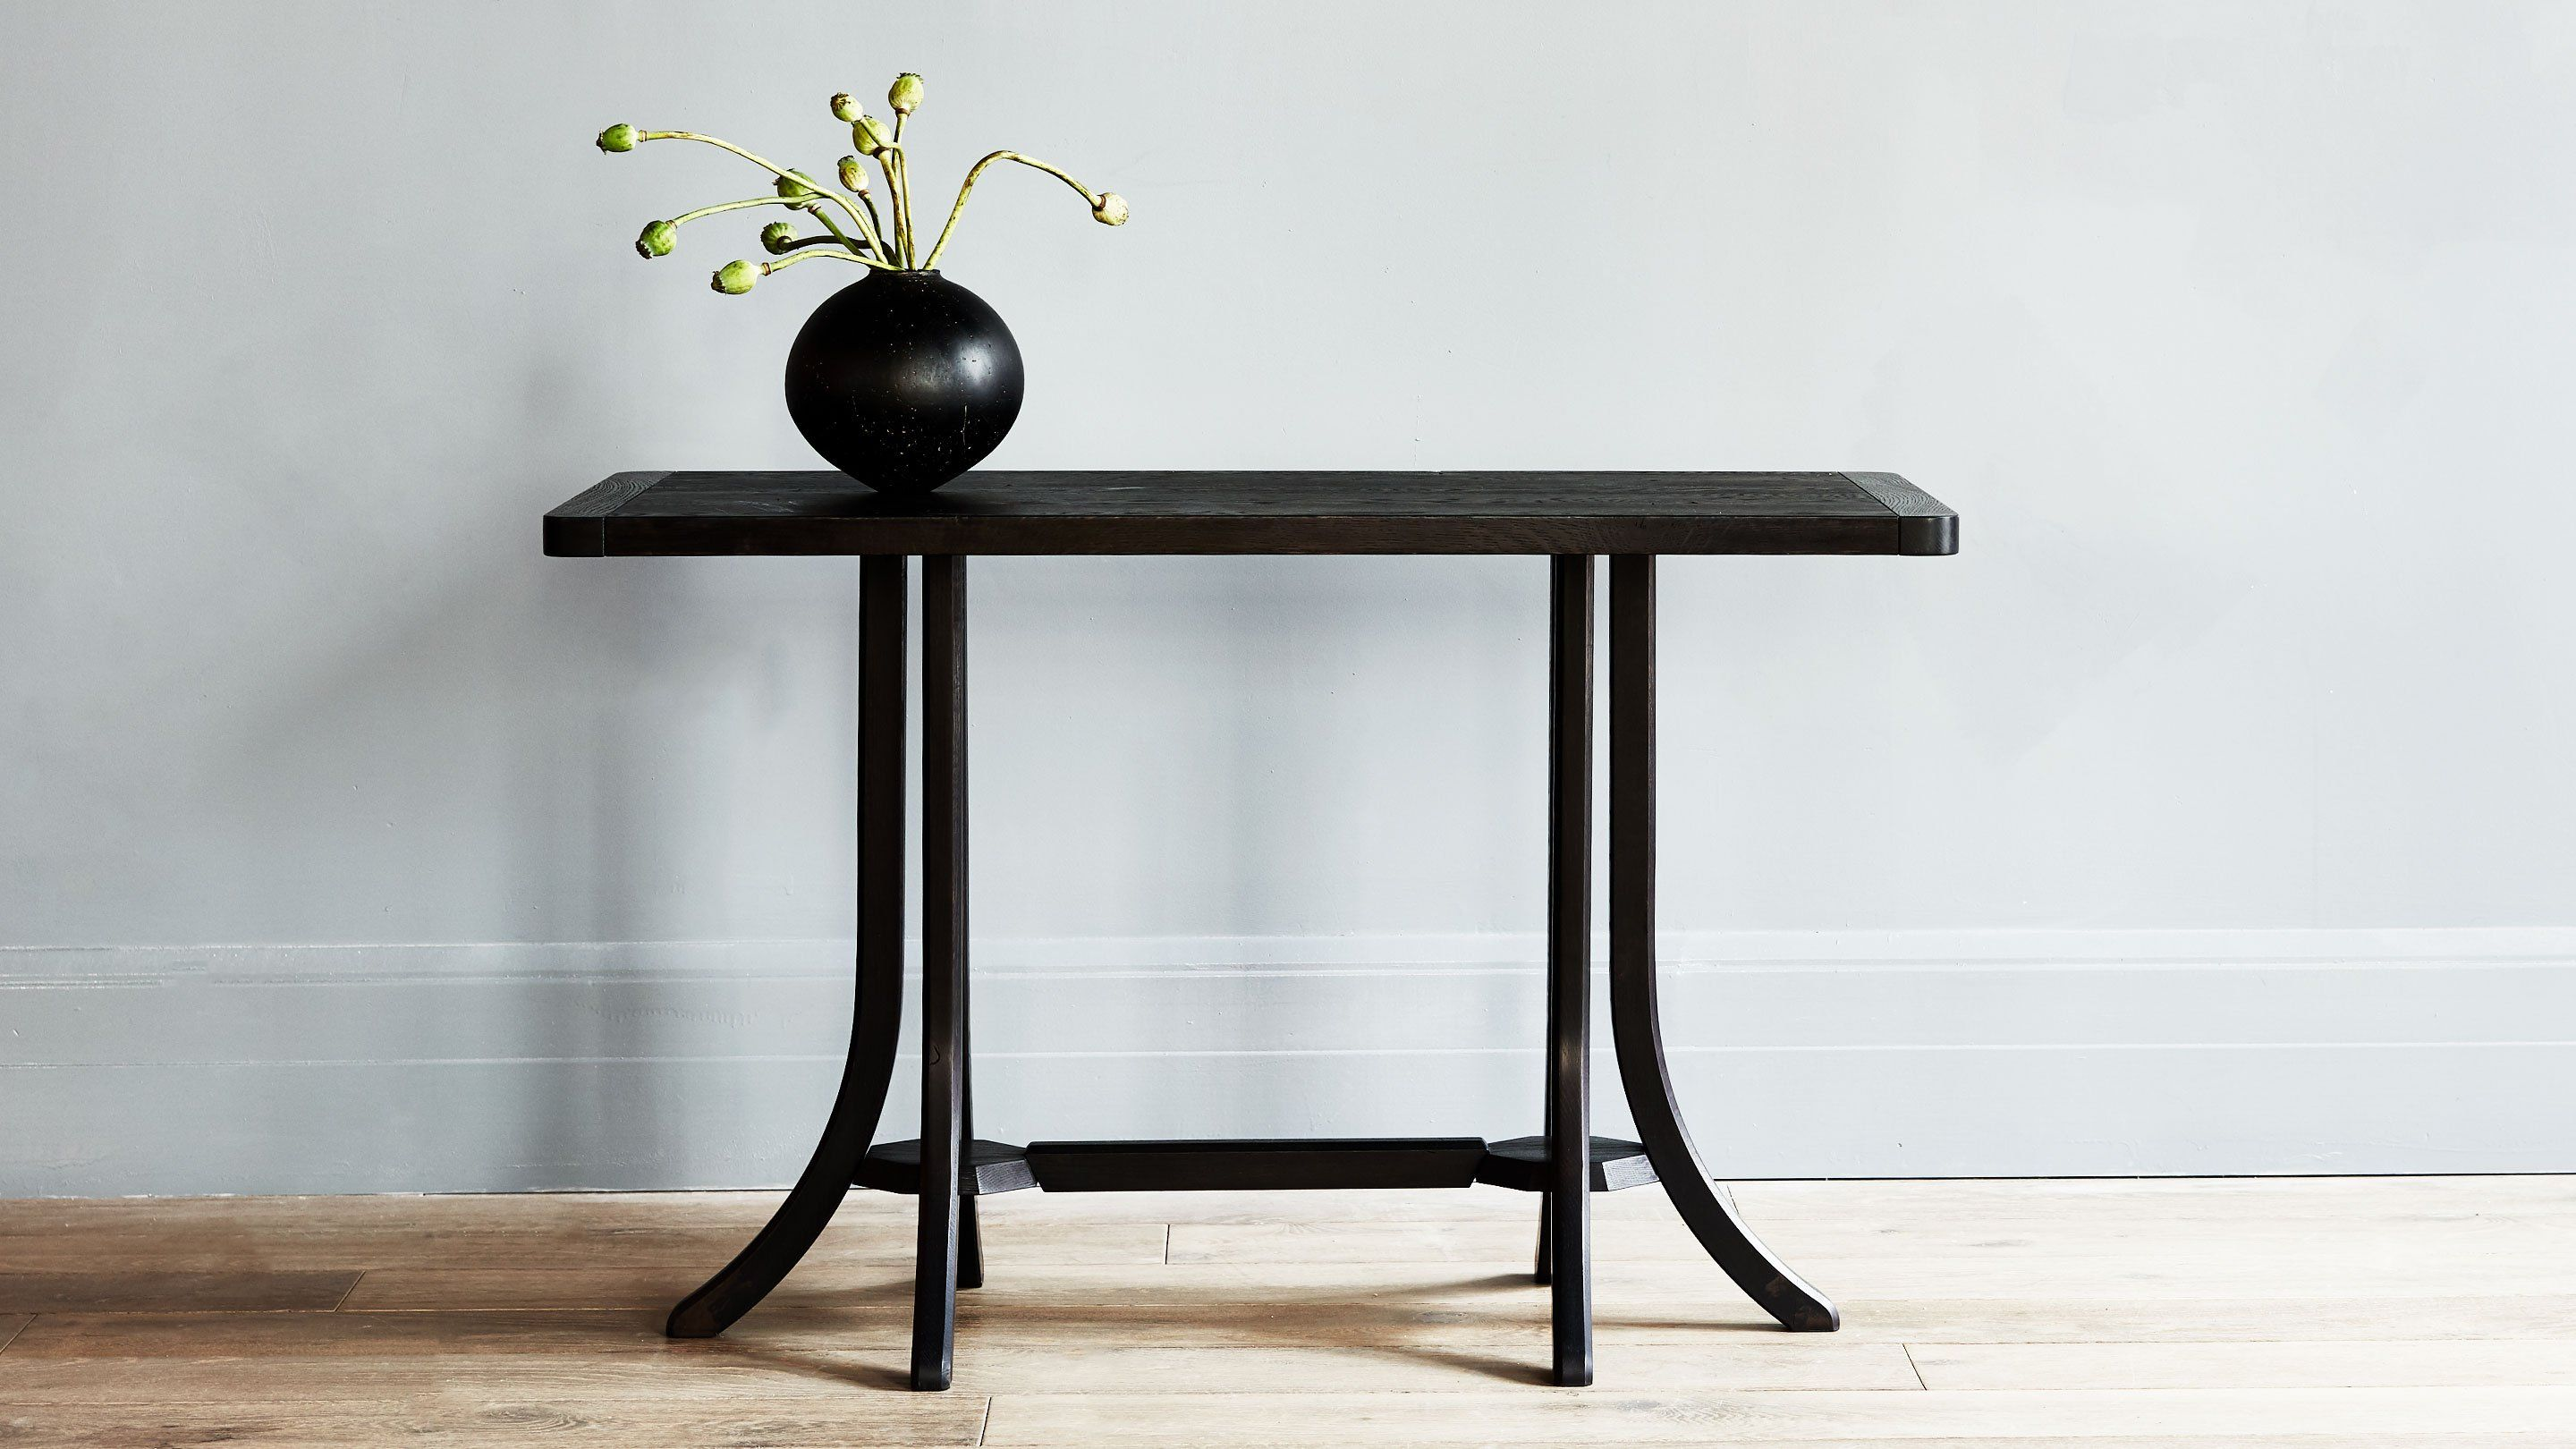 Angelica For Four Roman And Williams Guild Wood Brackets Roman And Williams Coffee Table Wood [ 1620 x 2880 Pixel ]